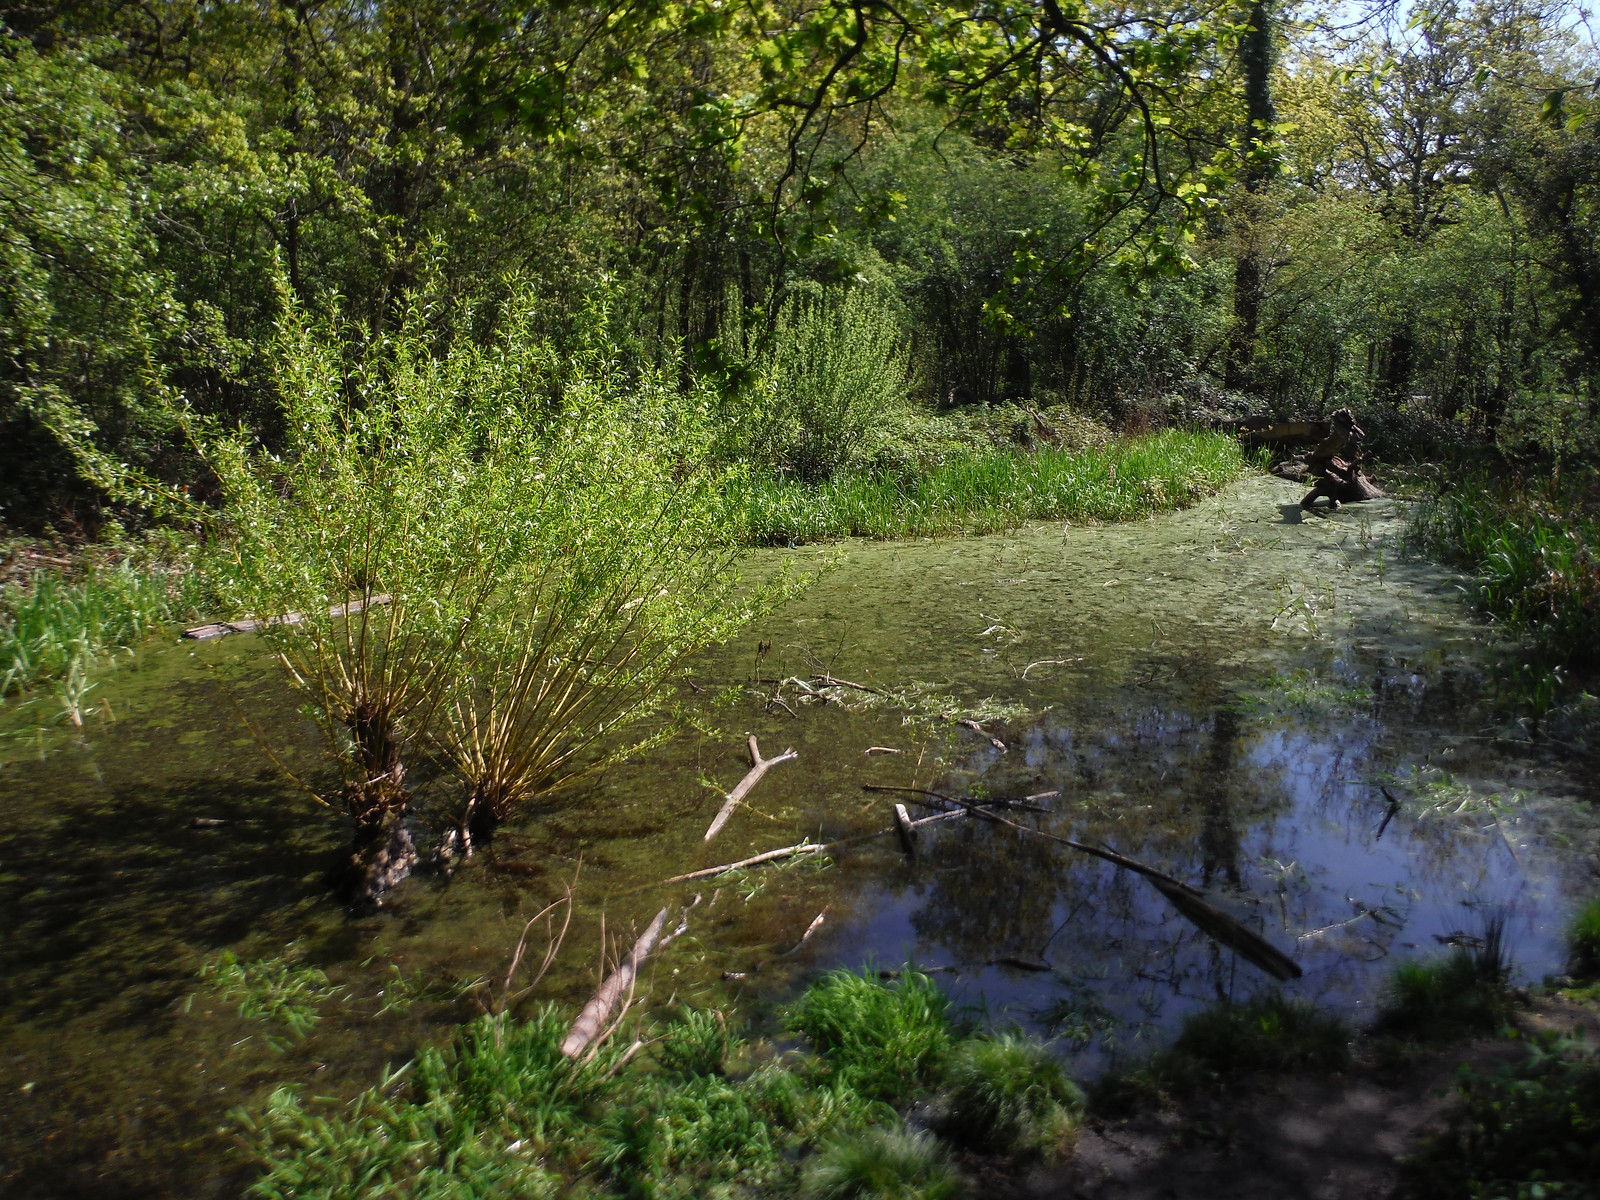 Pond off Green Chain Walk, Oxleas Wood SWC Short Walk 44 - Oxleas Wood and Shooters Hill (Falconwood Circular)